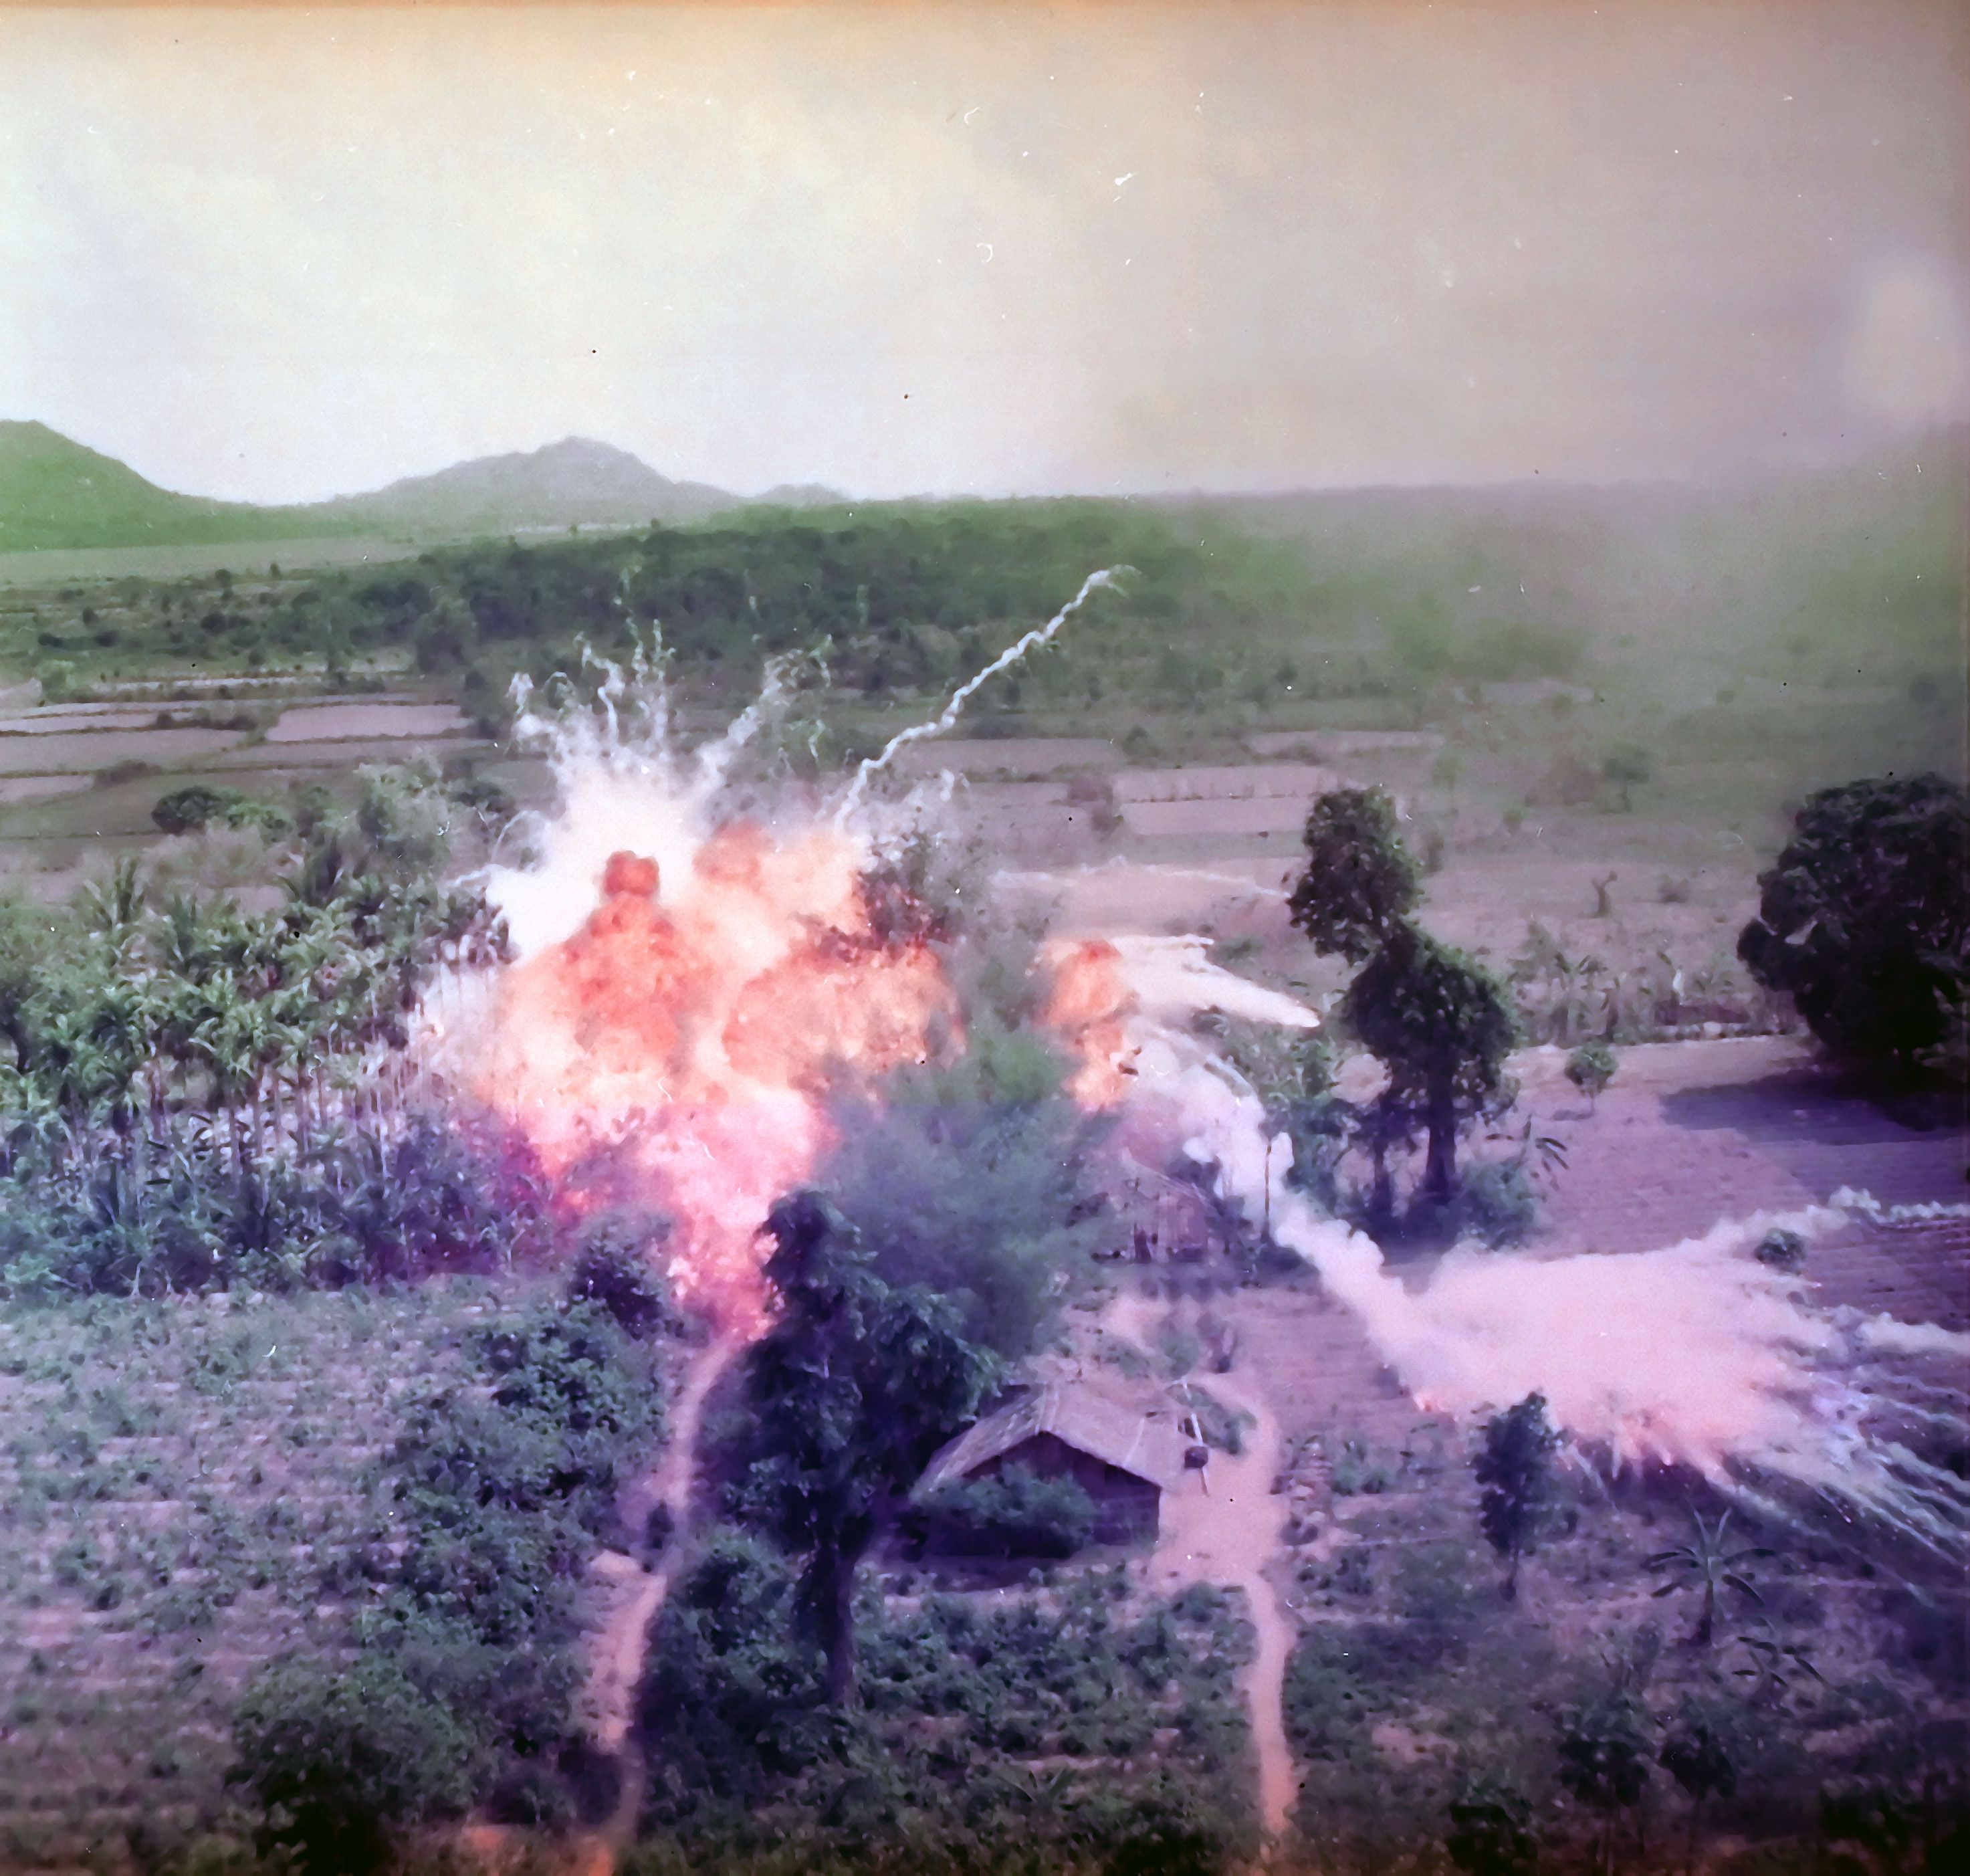 This is a picture of Napalm being dropped onto Viet Cong